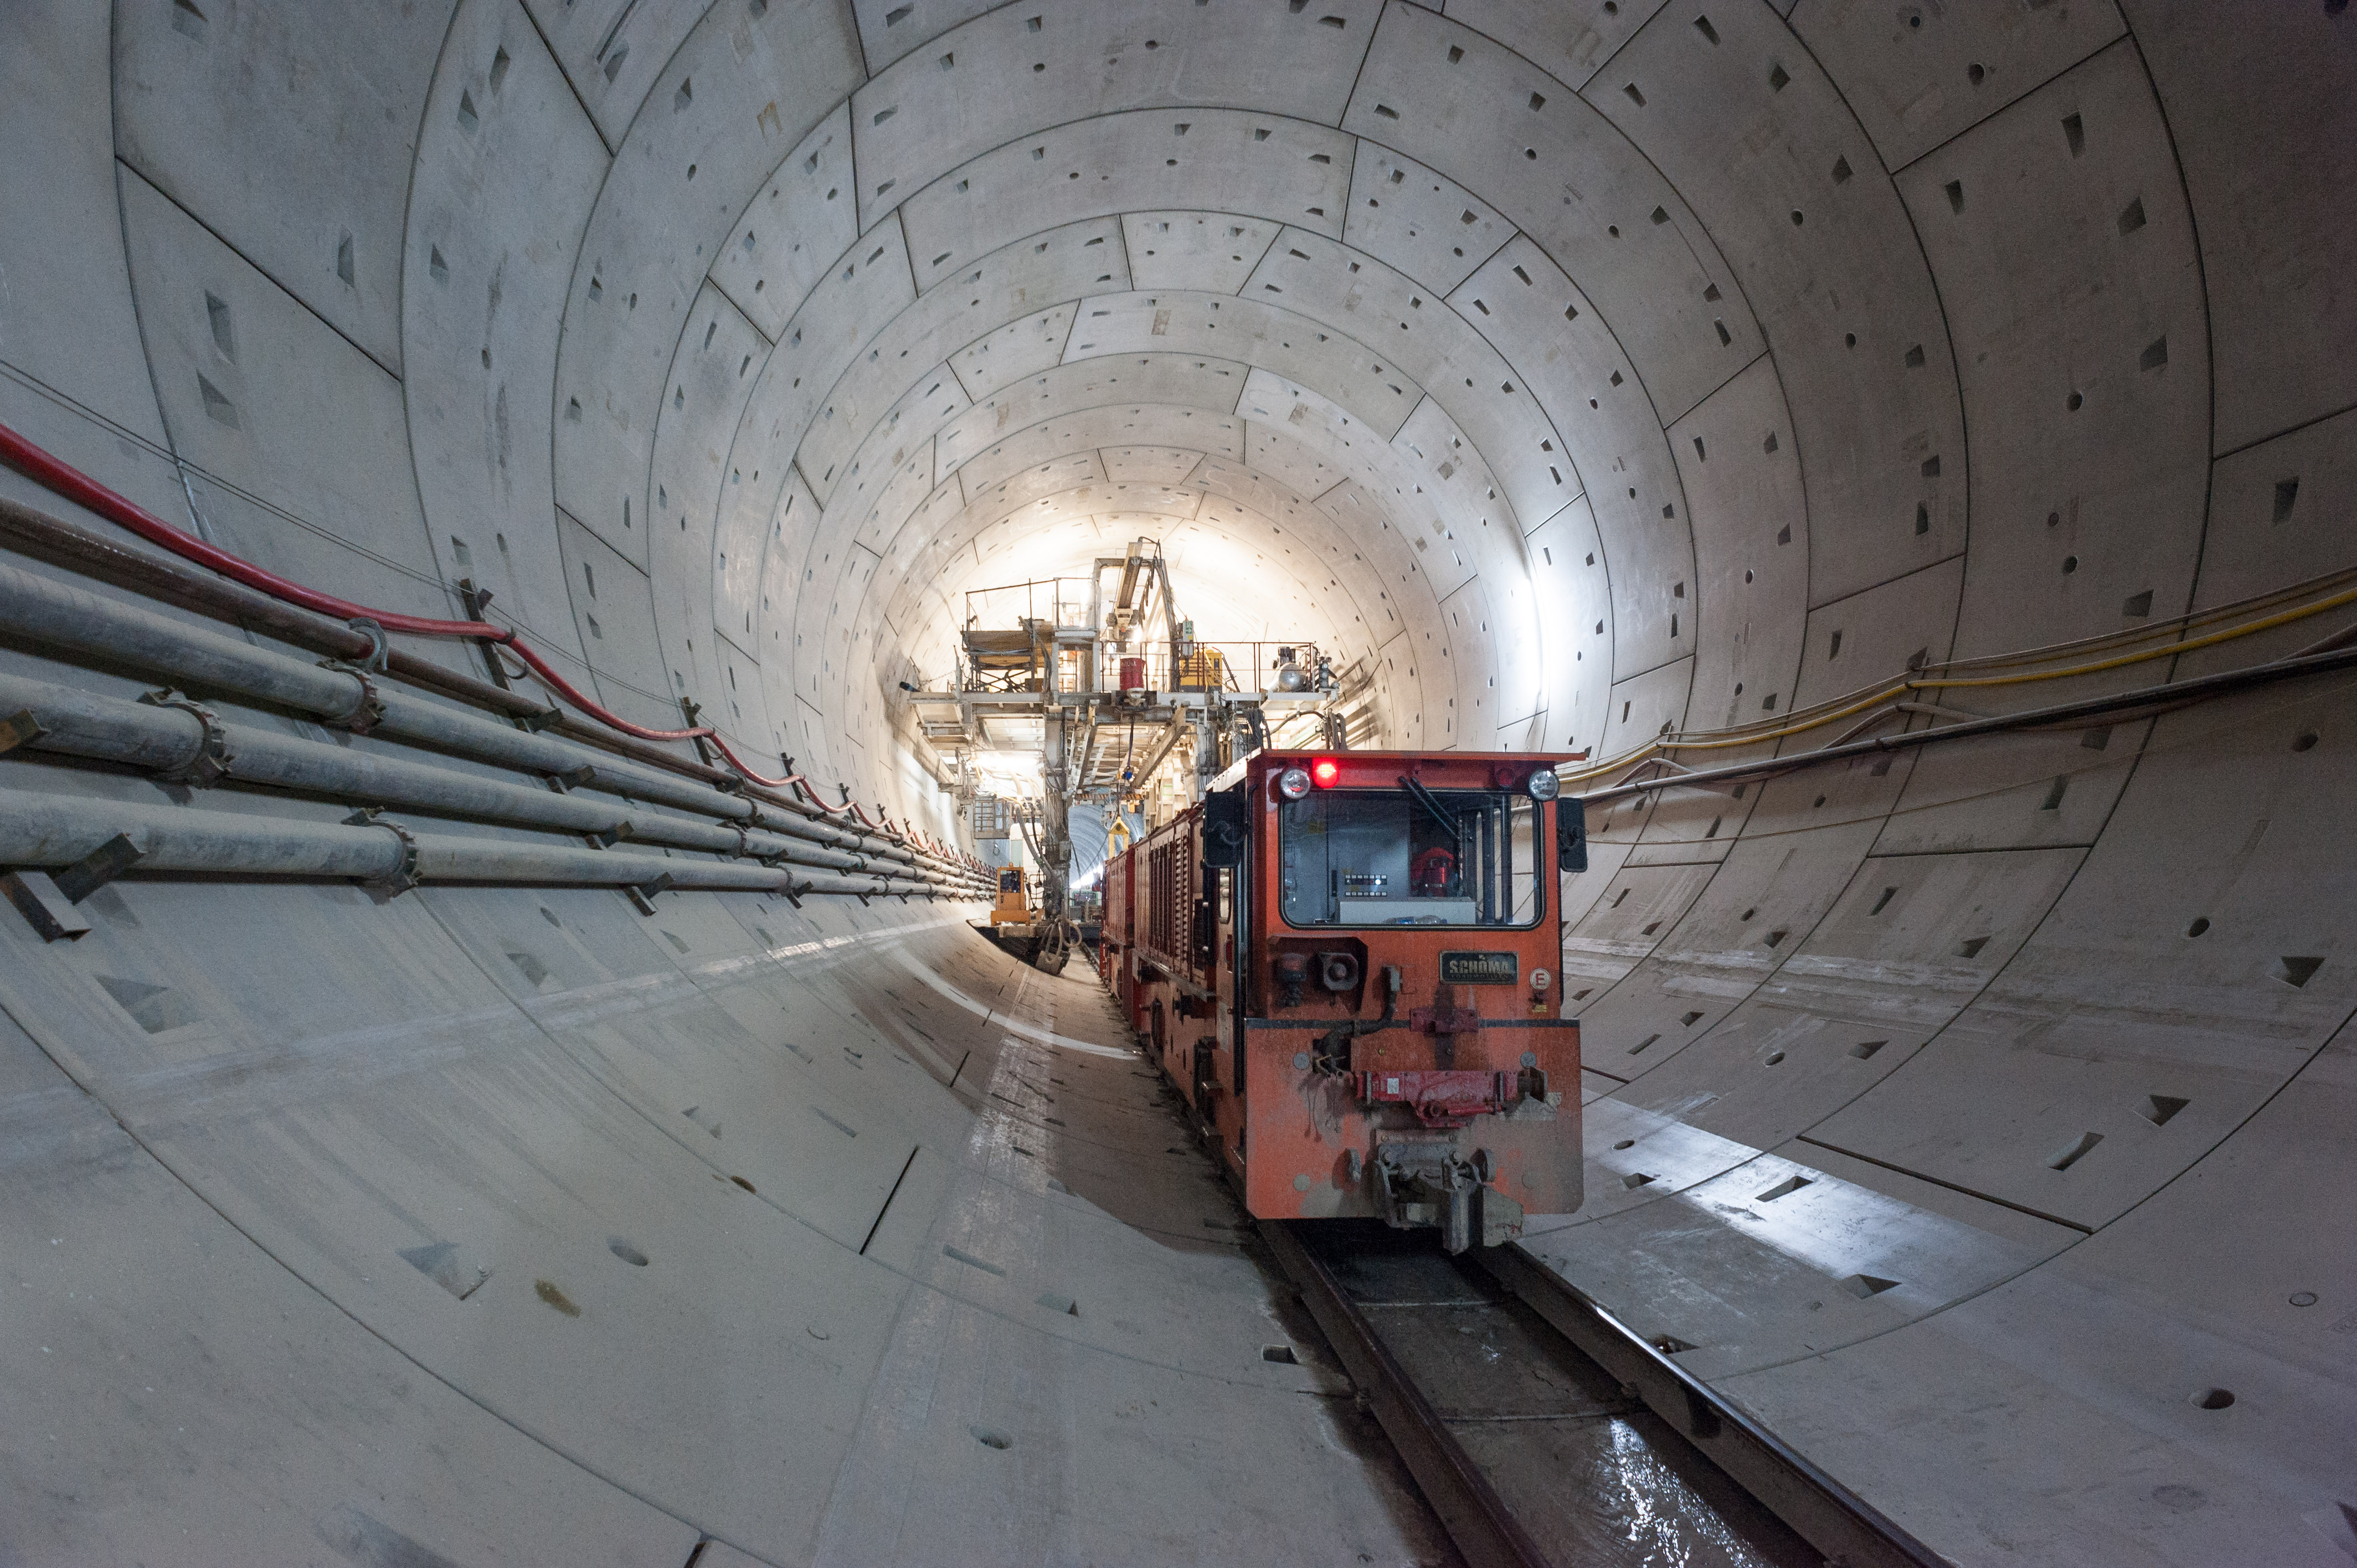 Tunnel Albaufstieg - Tunnel construction